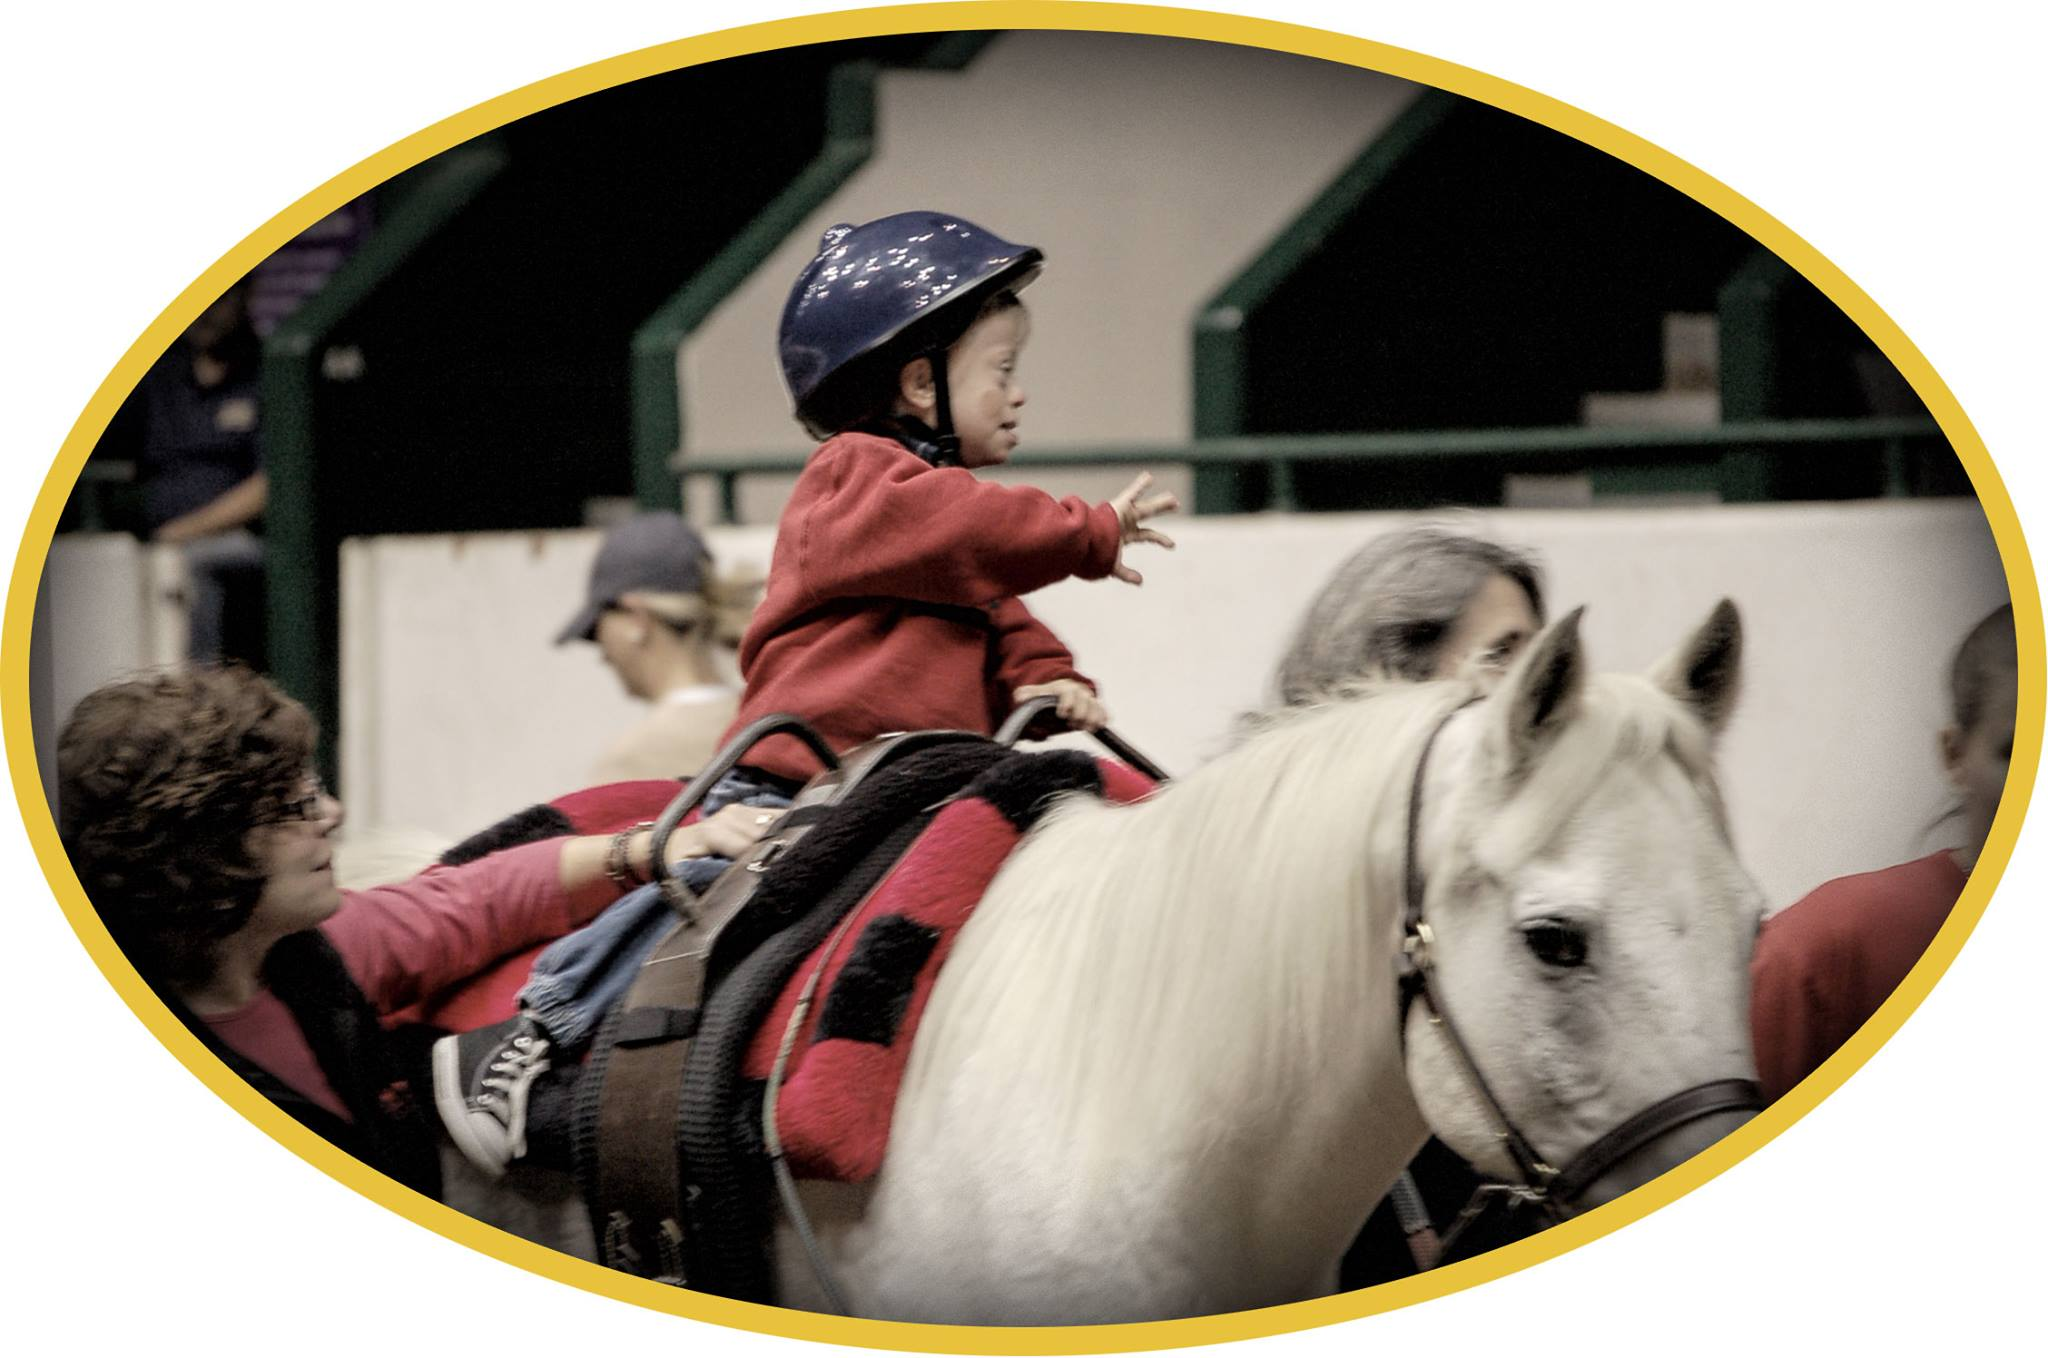 MHJA Supports We Can Ride